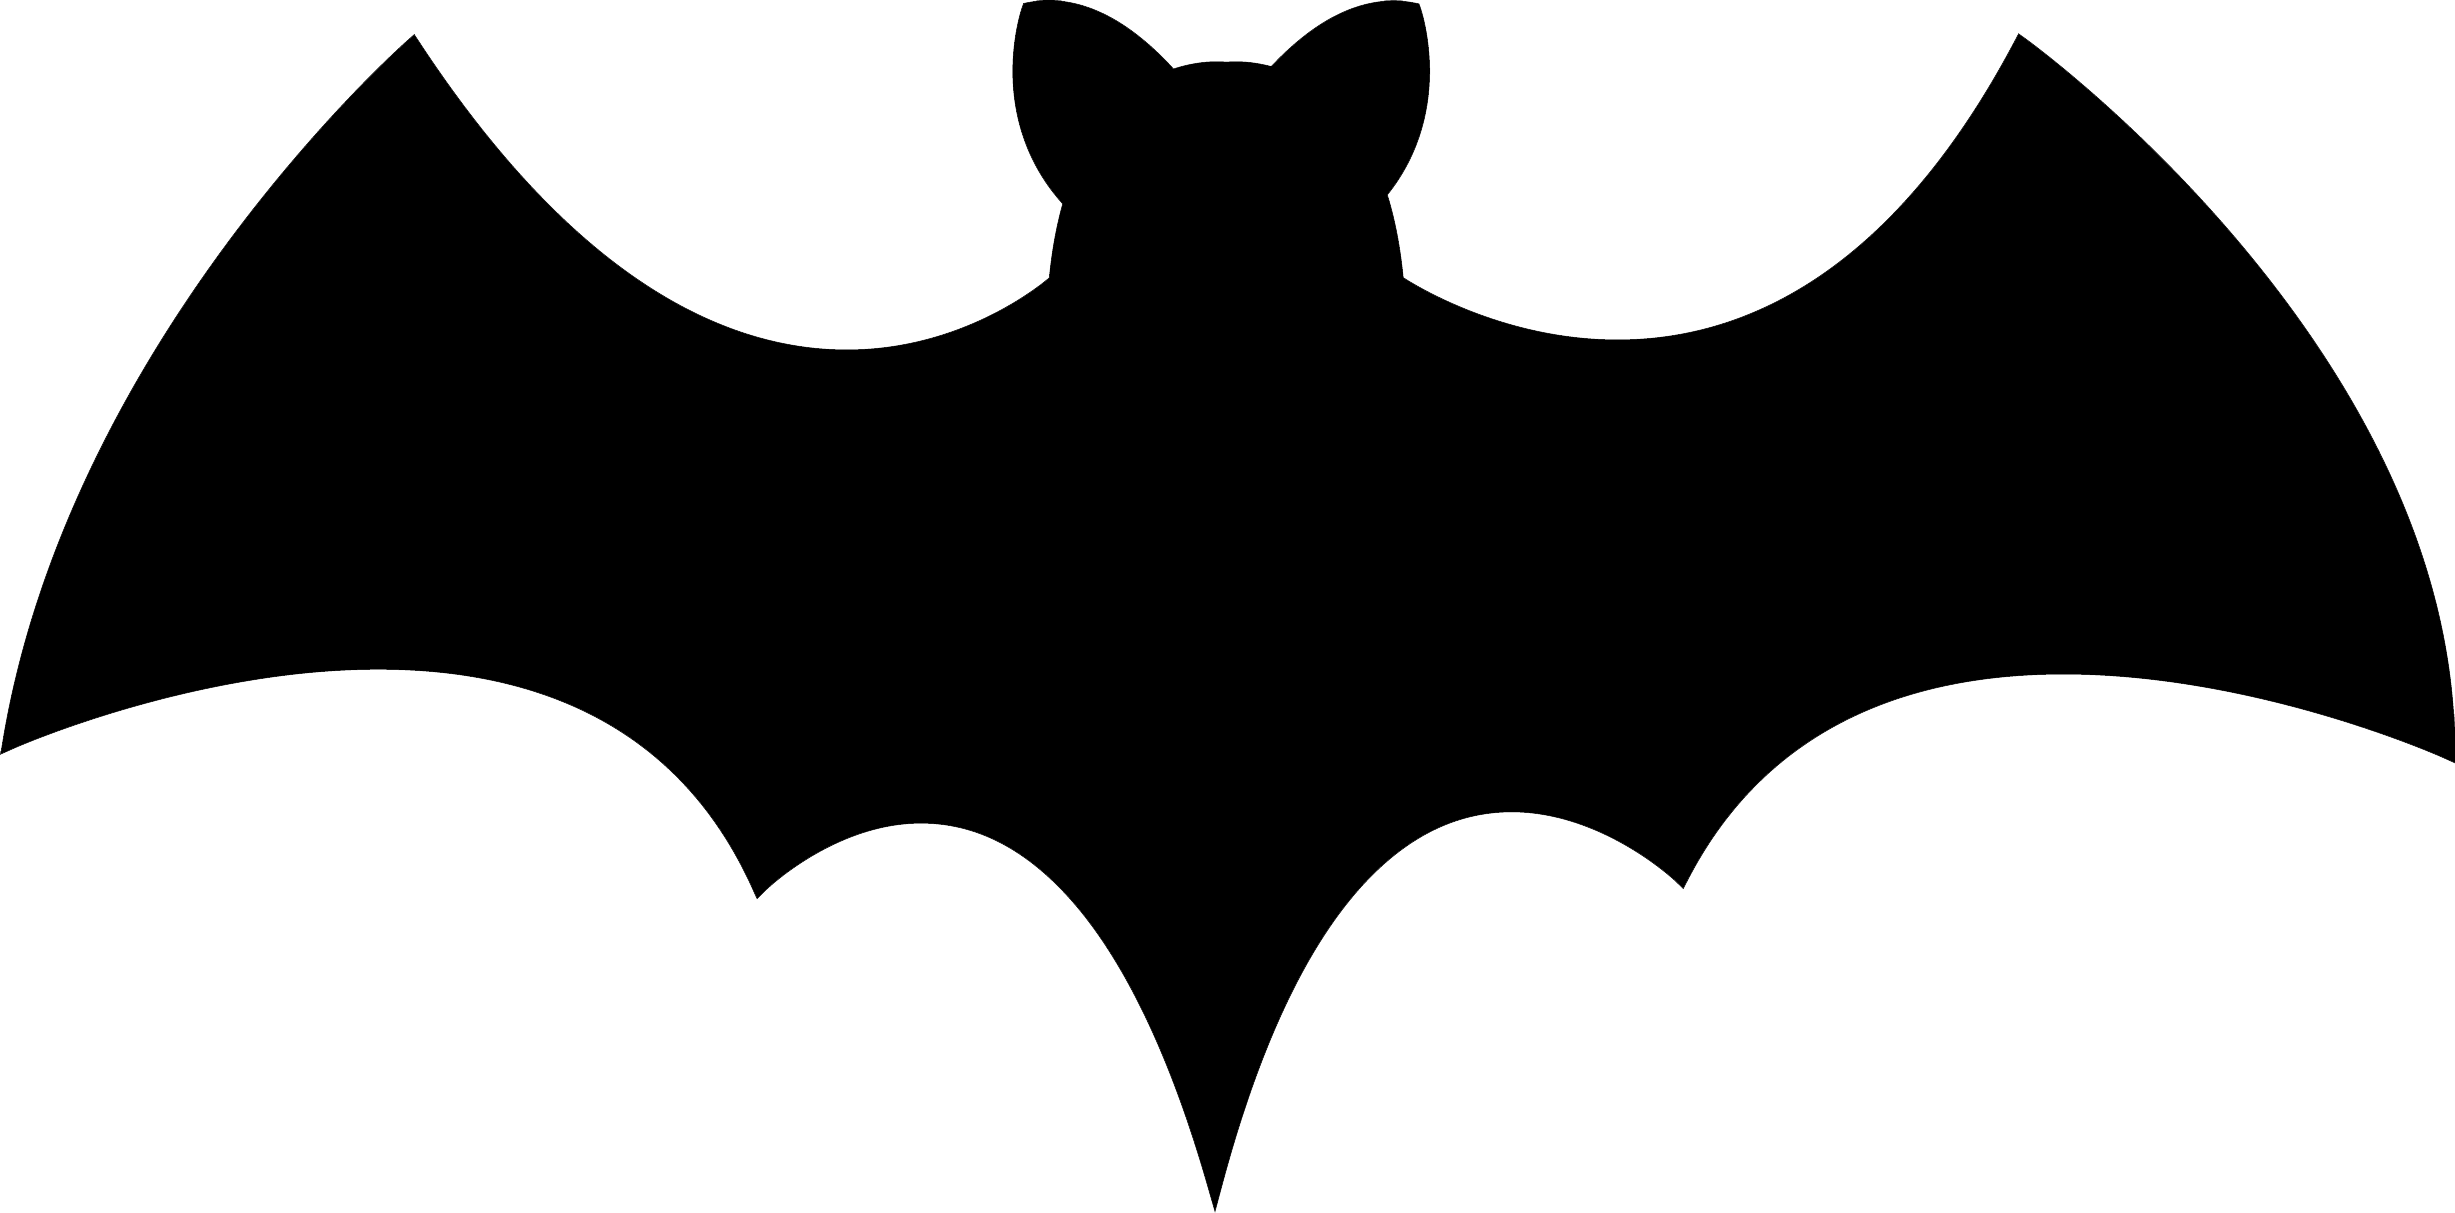 collection of transparent. Clipart animals bat